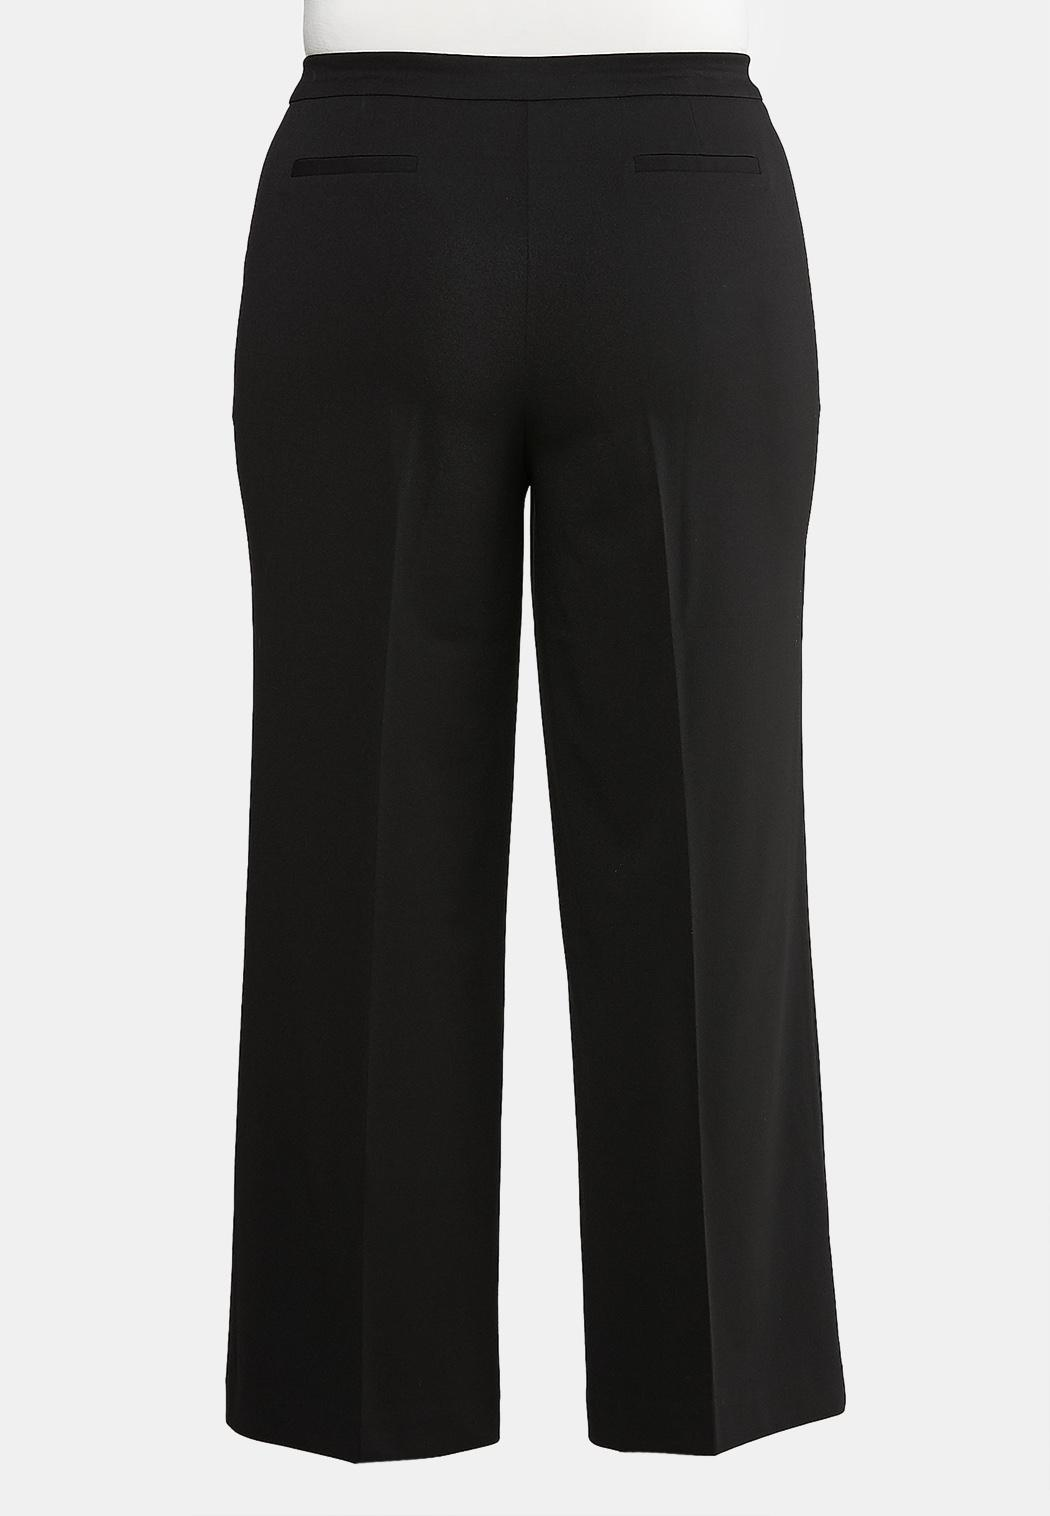 Plus Size Pull-On Trouser Pants (Item #43940768)